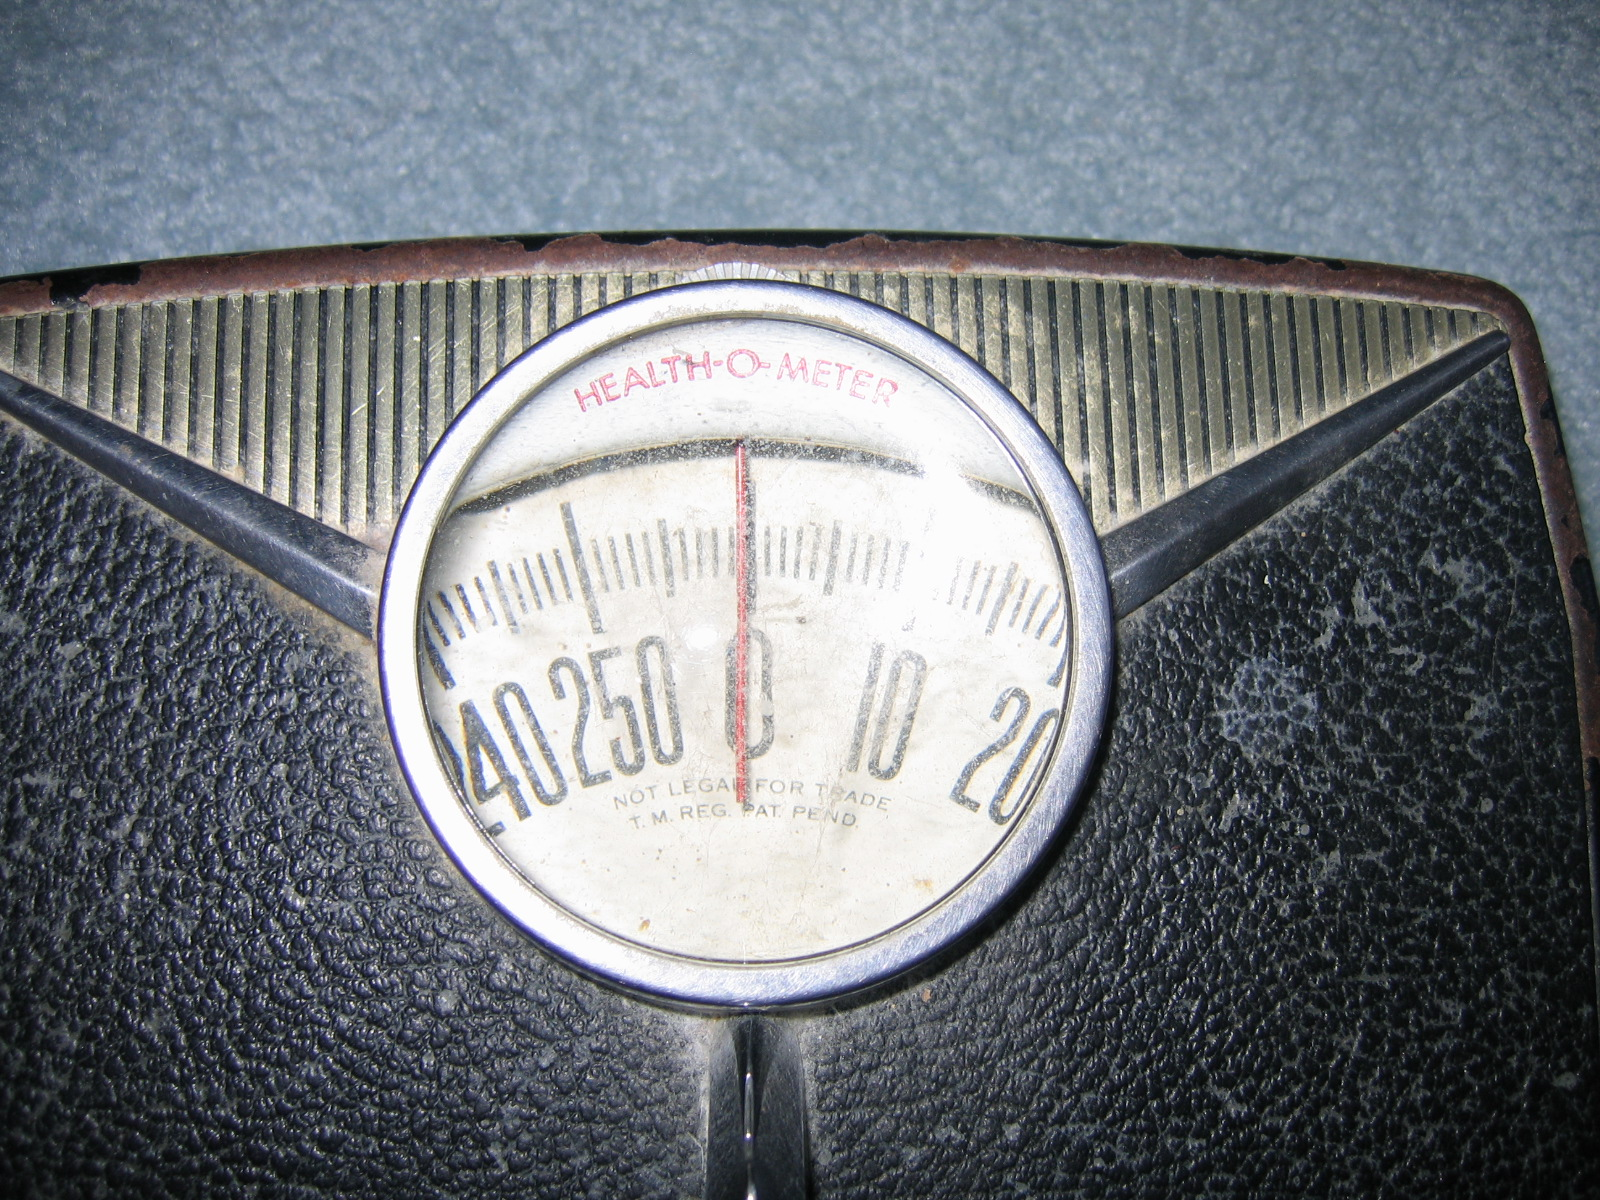 Vintage Health O Meter Bathroom Weight Scale Item 157 For